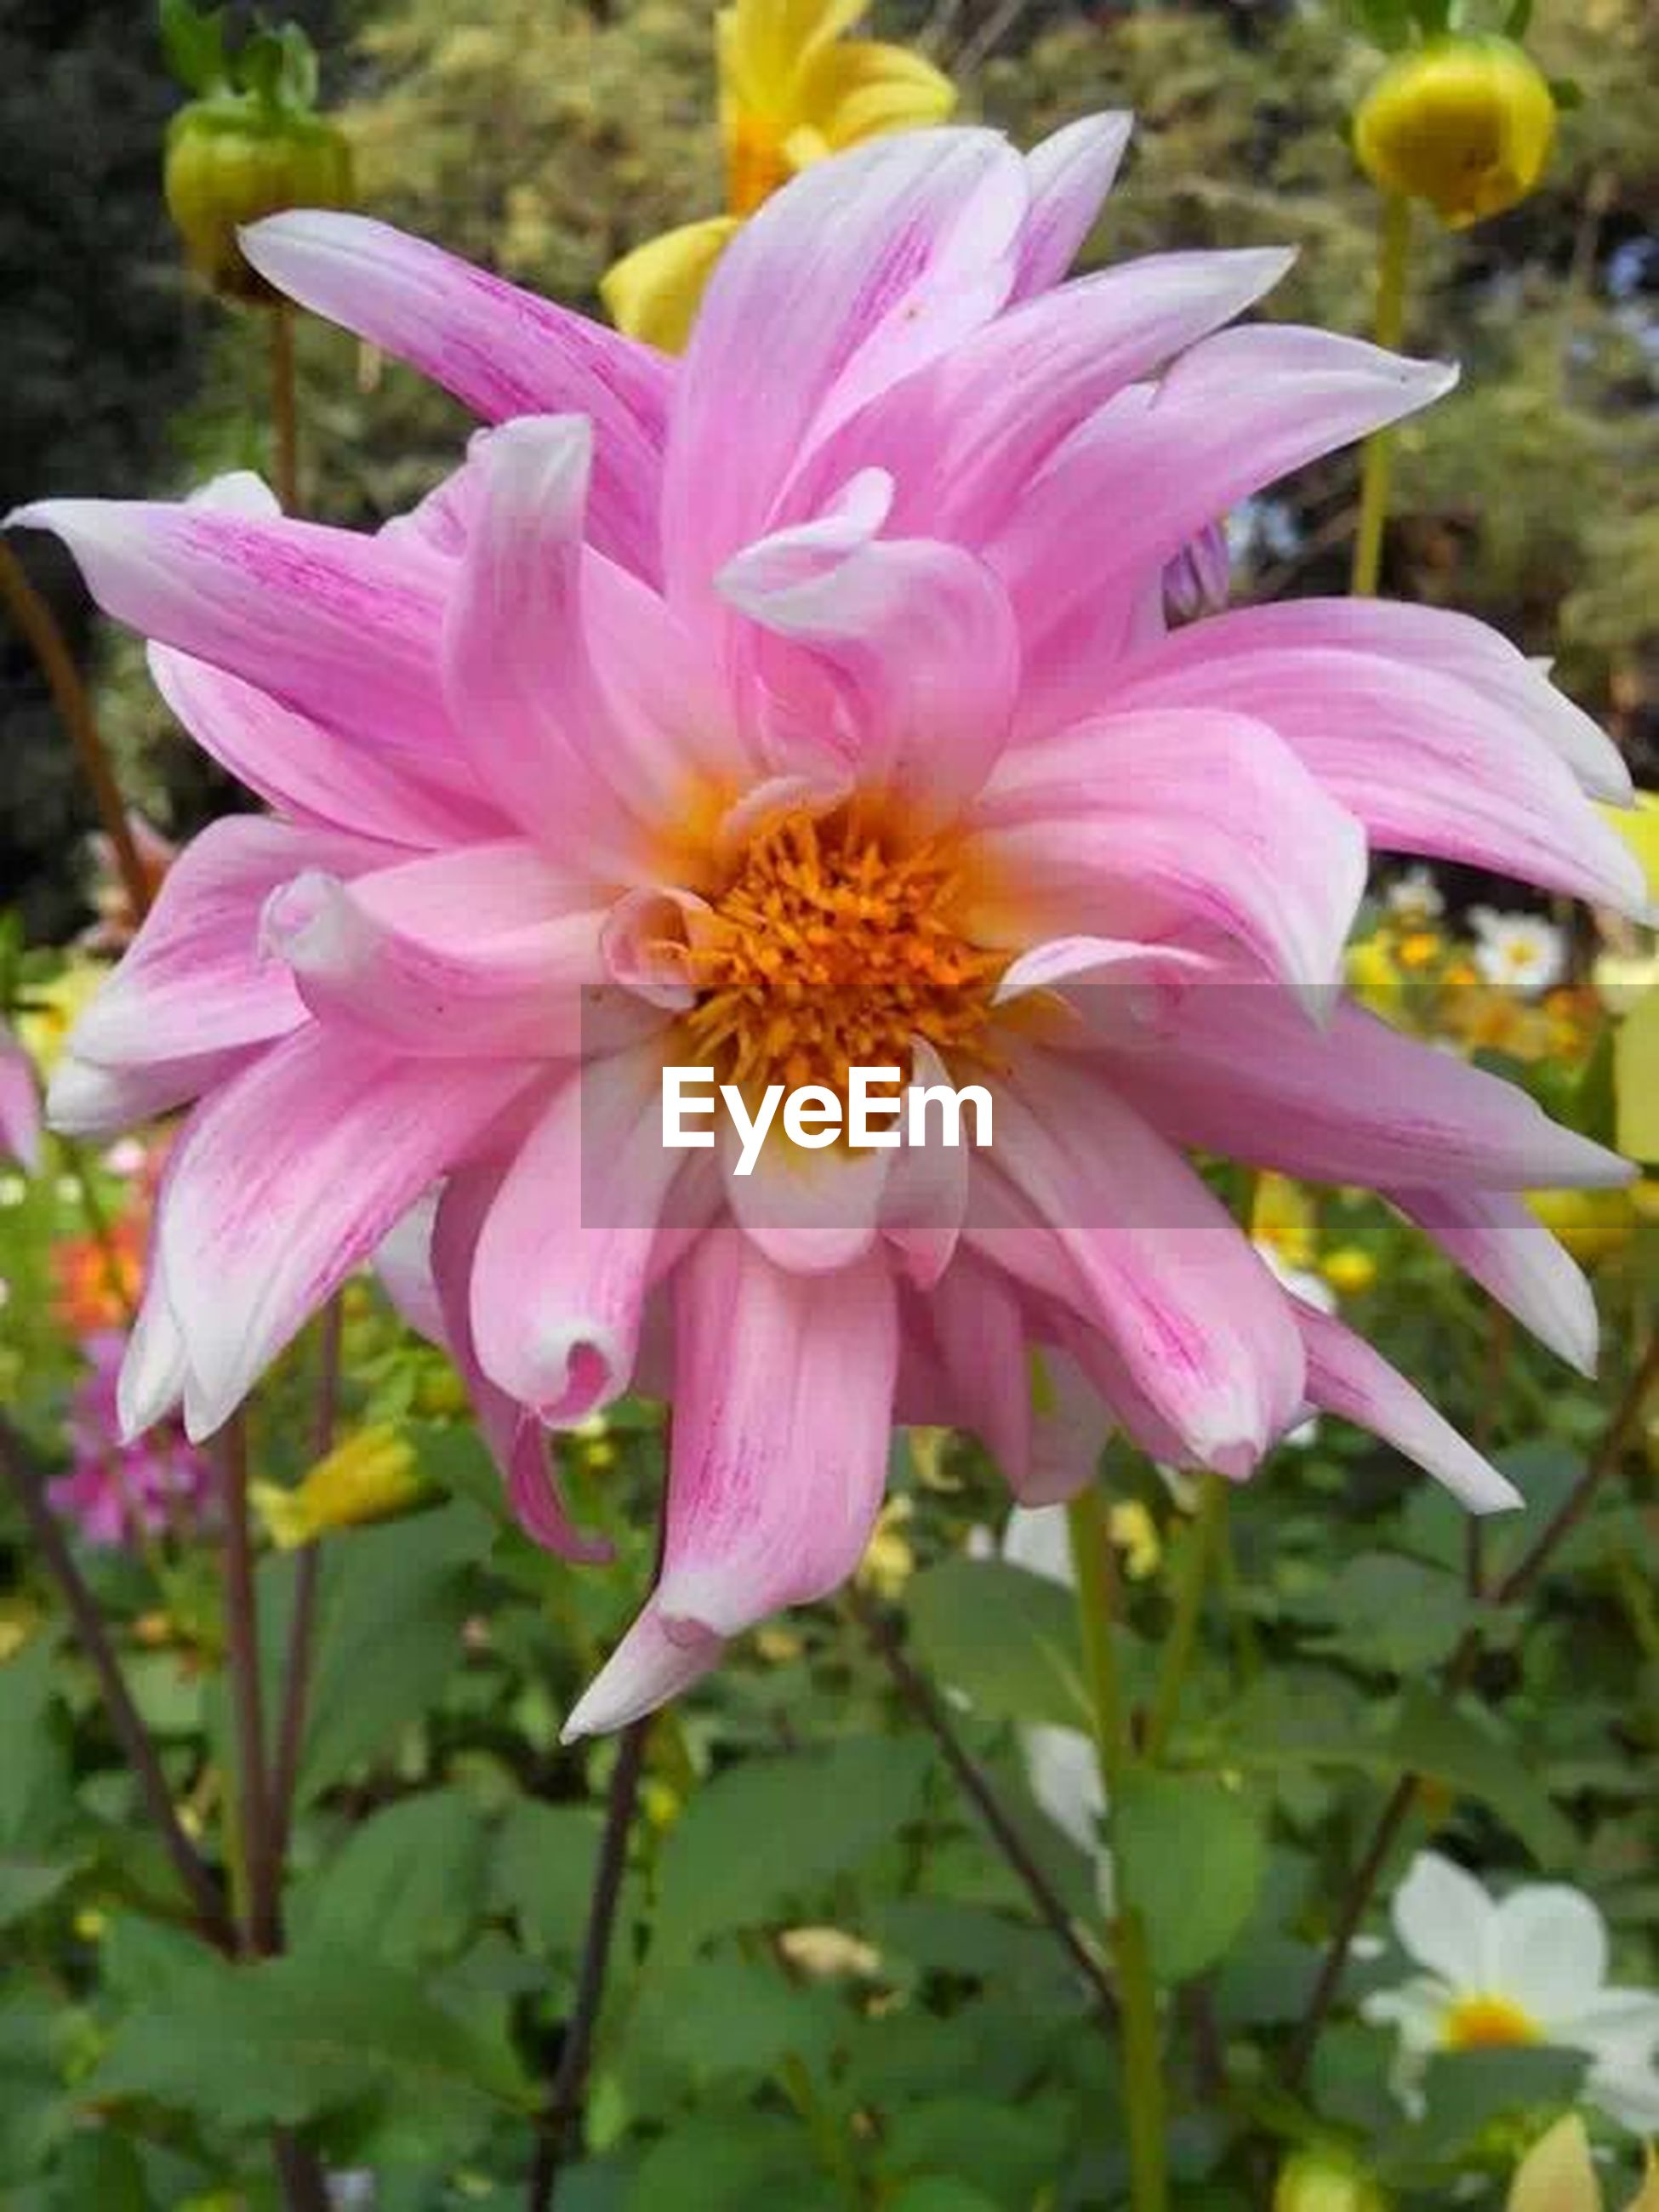 flower, petal, freshness, flower head, fragility, growth, beauty in nature, close-up, pink color, blooming, focus on foreground, pollen, nature, yellow, plant, in bloom, single flower, stem, blossom, day